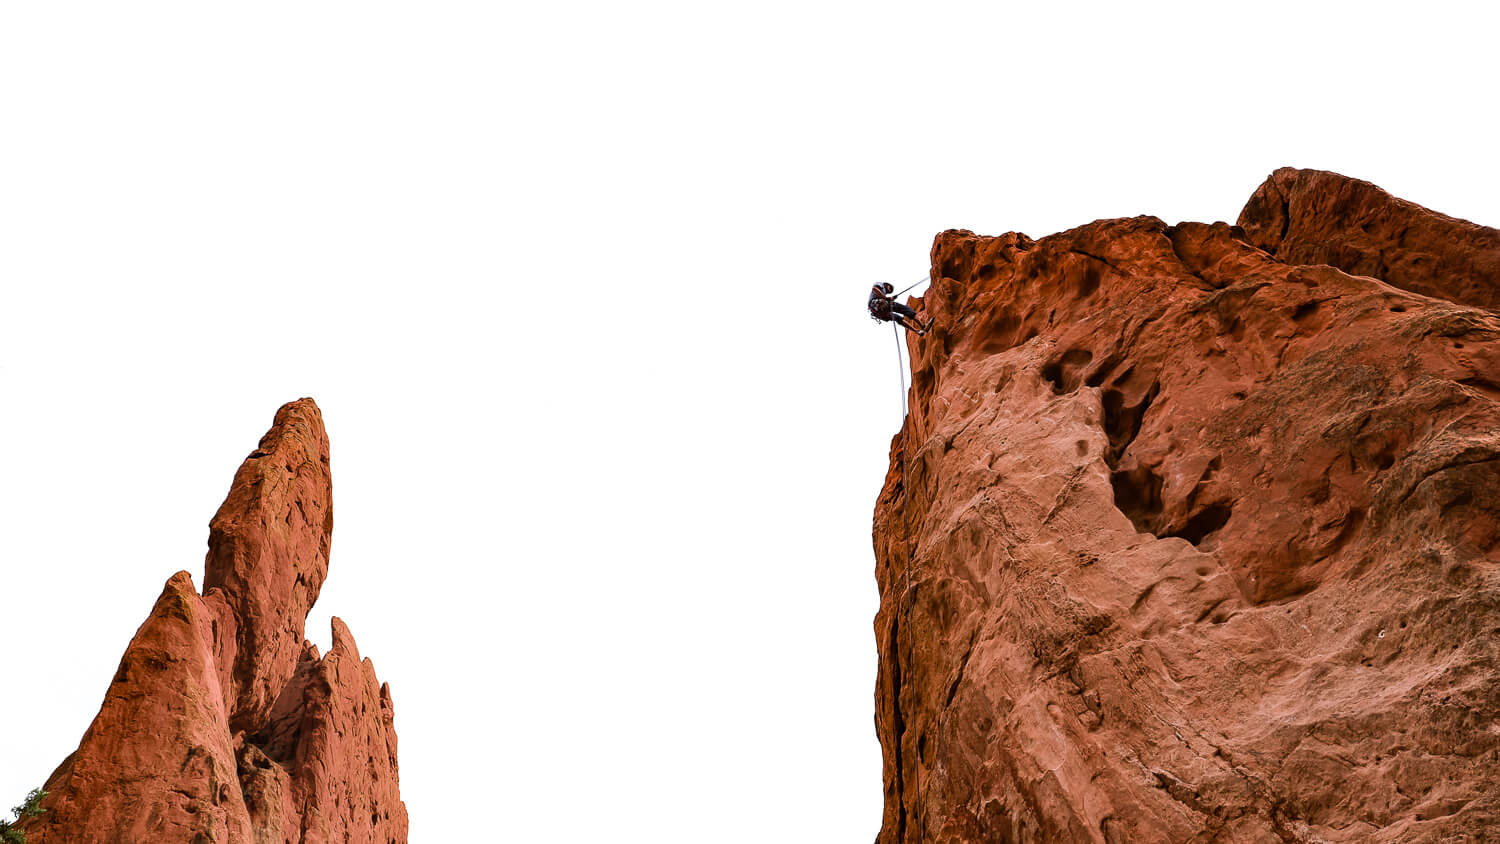 """Rock Climbers, Garden of the Gods.  Travel photography and guide by © Natasha Lequepeys for """"And Then I Met Yoko"""". #colorado #usa #coloradosprings #travelguide #coloradoitinerary #fujifilm"""